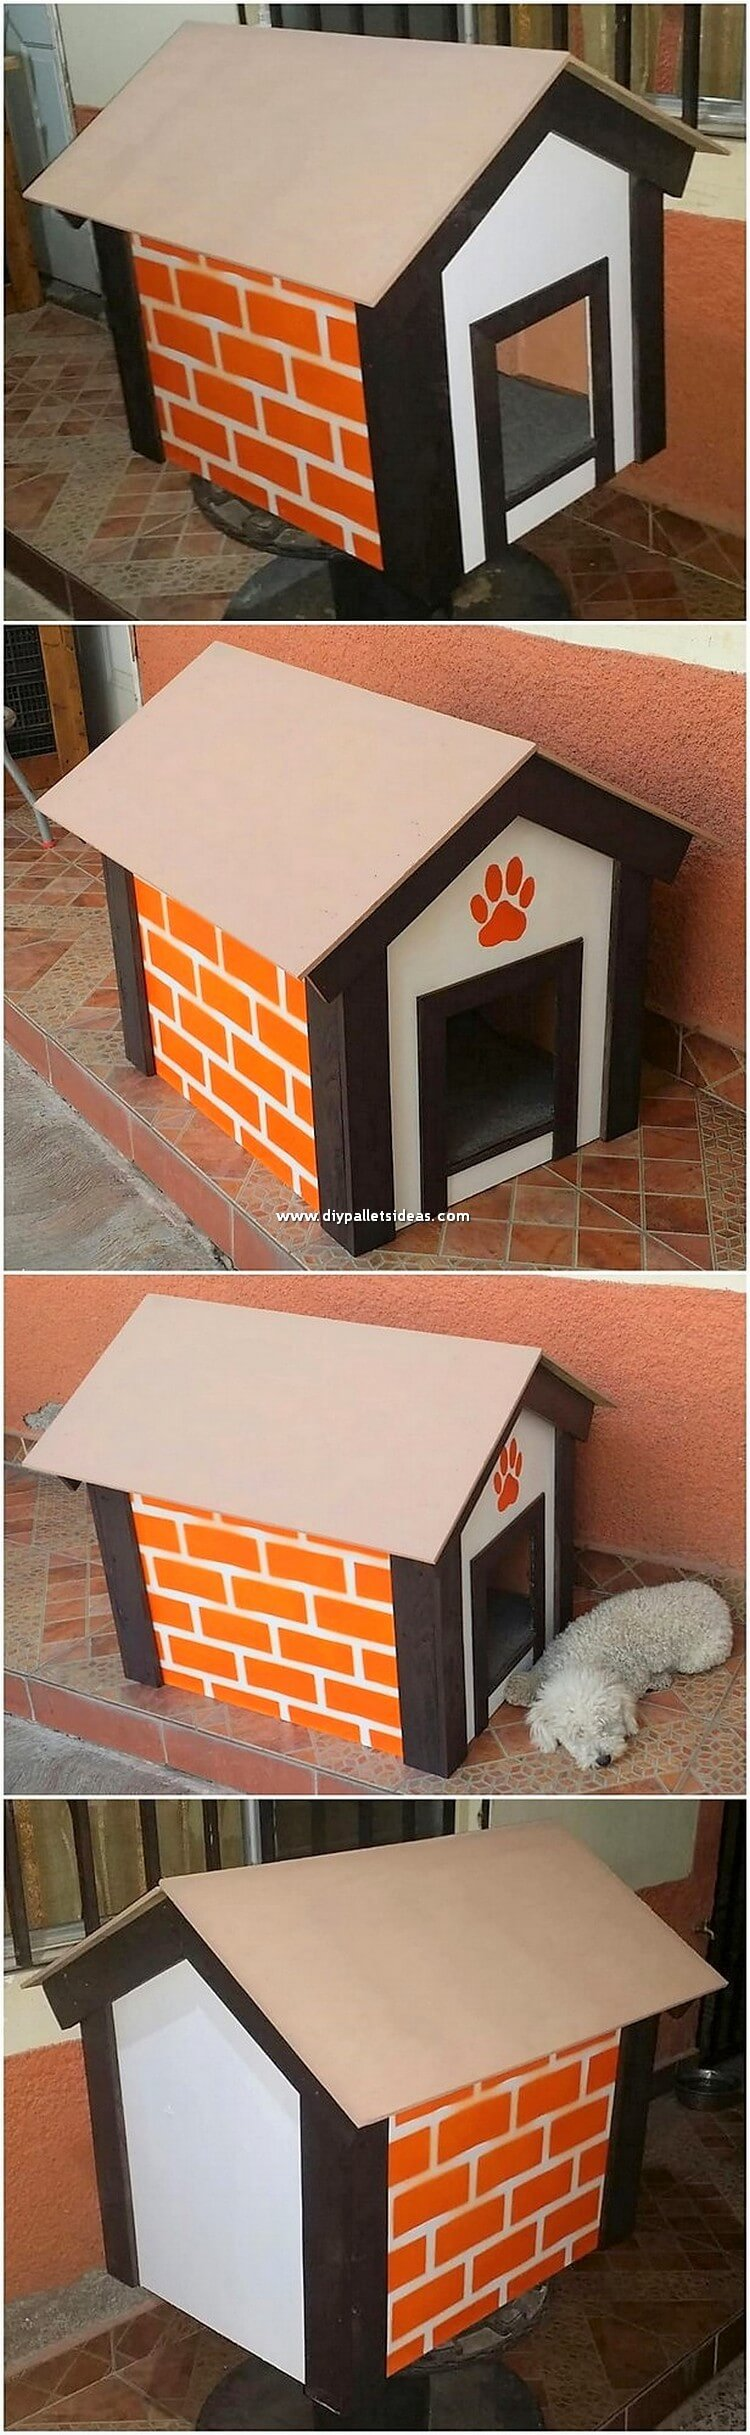 Pallet Dog Pet House